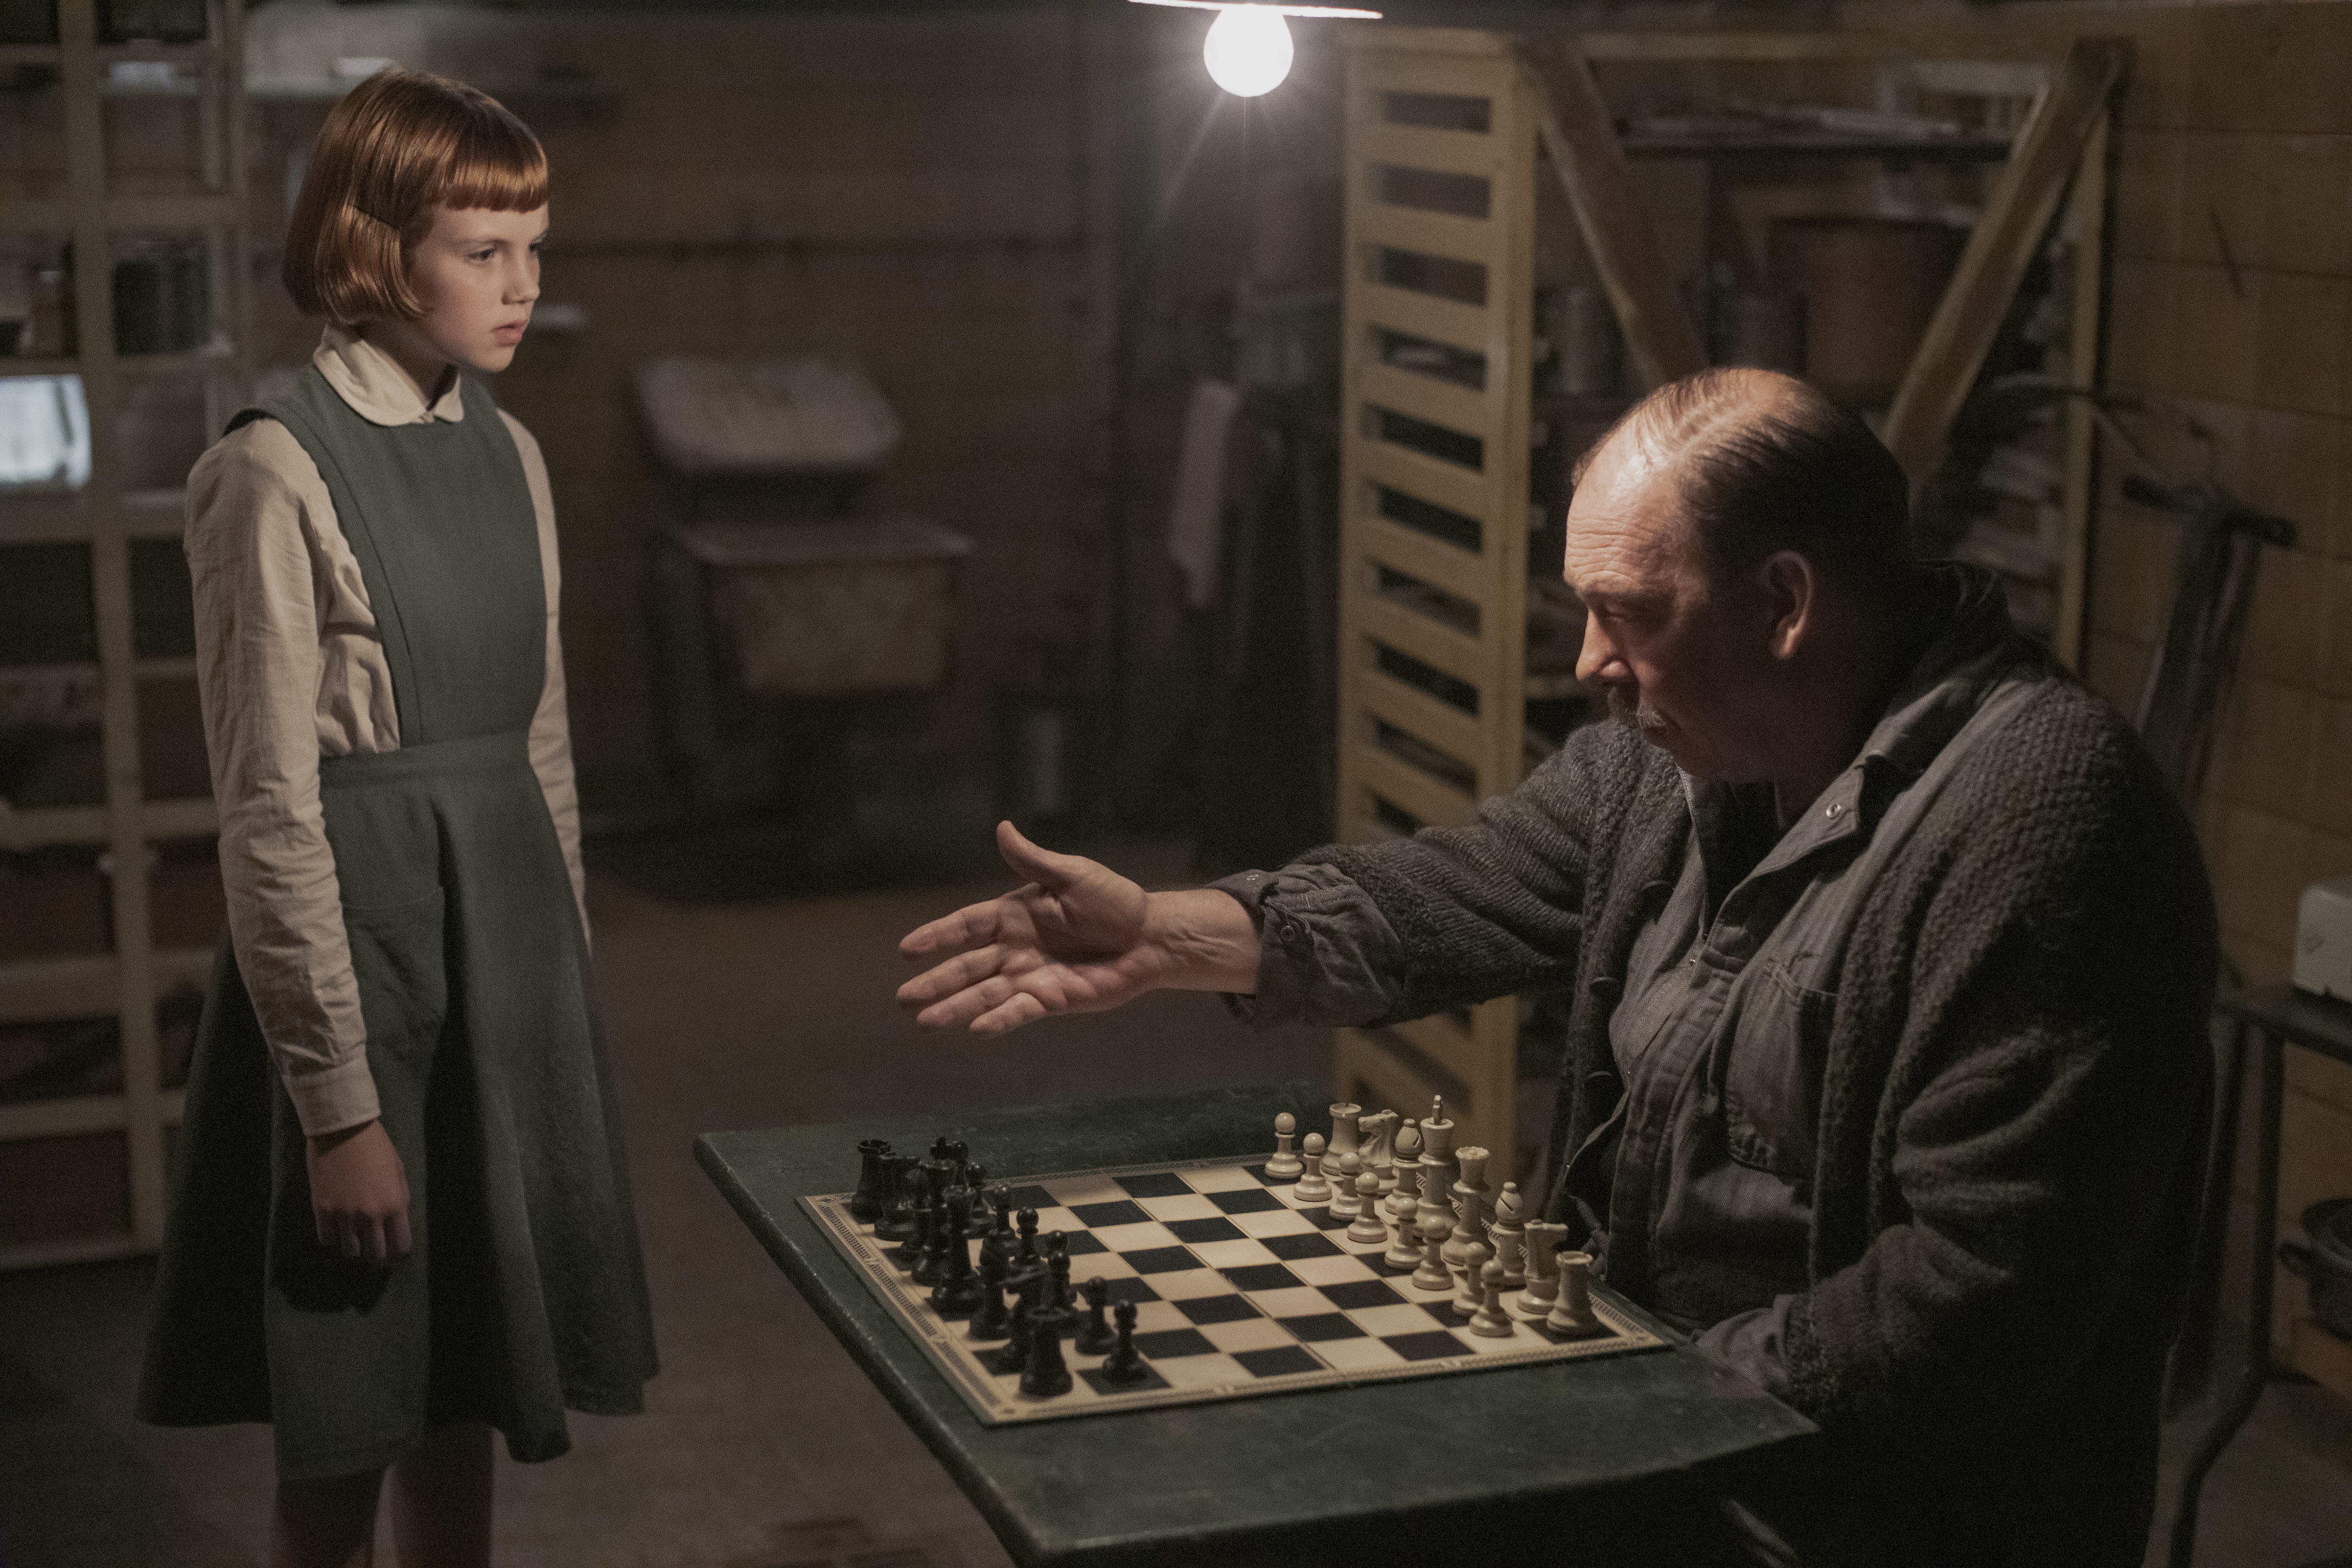 Isla Johnston as Beth and Bill Camp as Mr. Shaibel in episode 101 of The Queen's Gambit. (Phil Bray/Netflix)